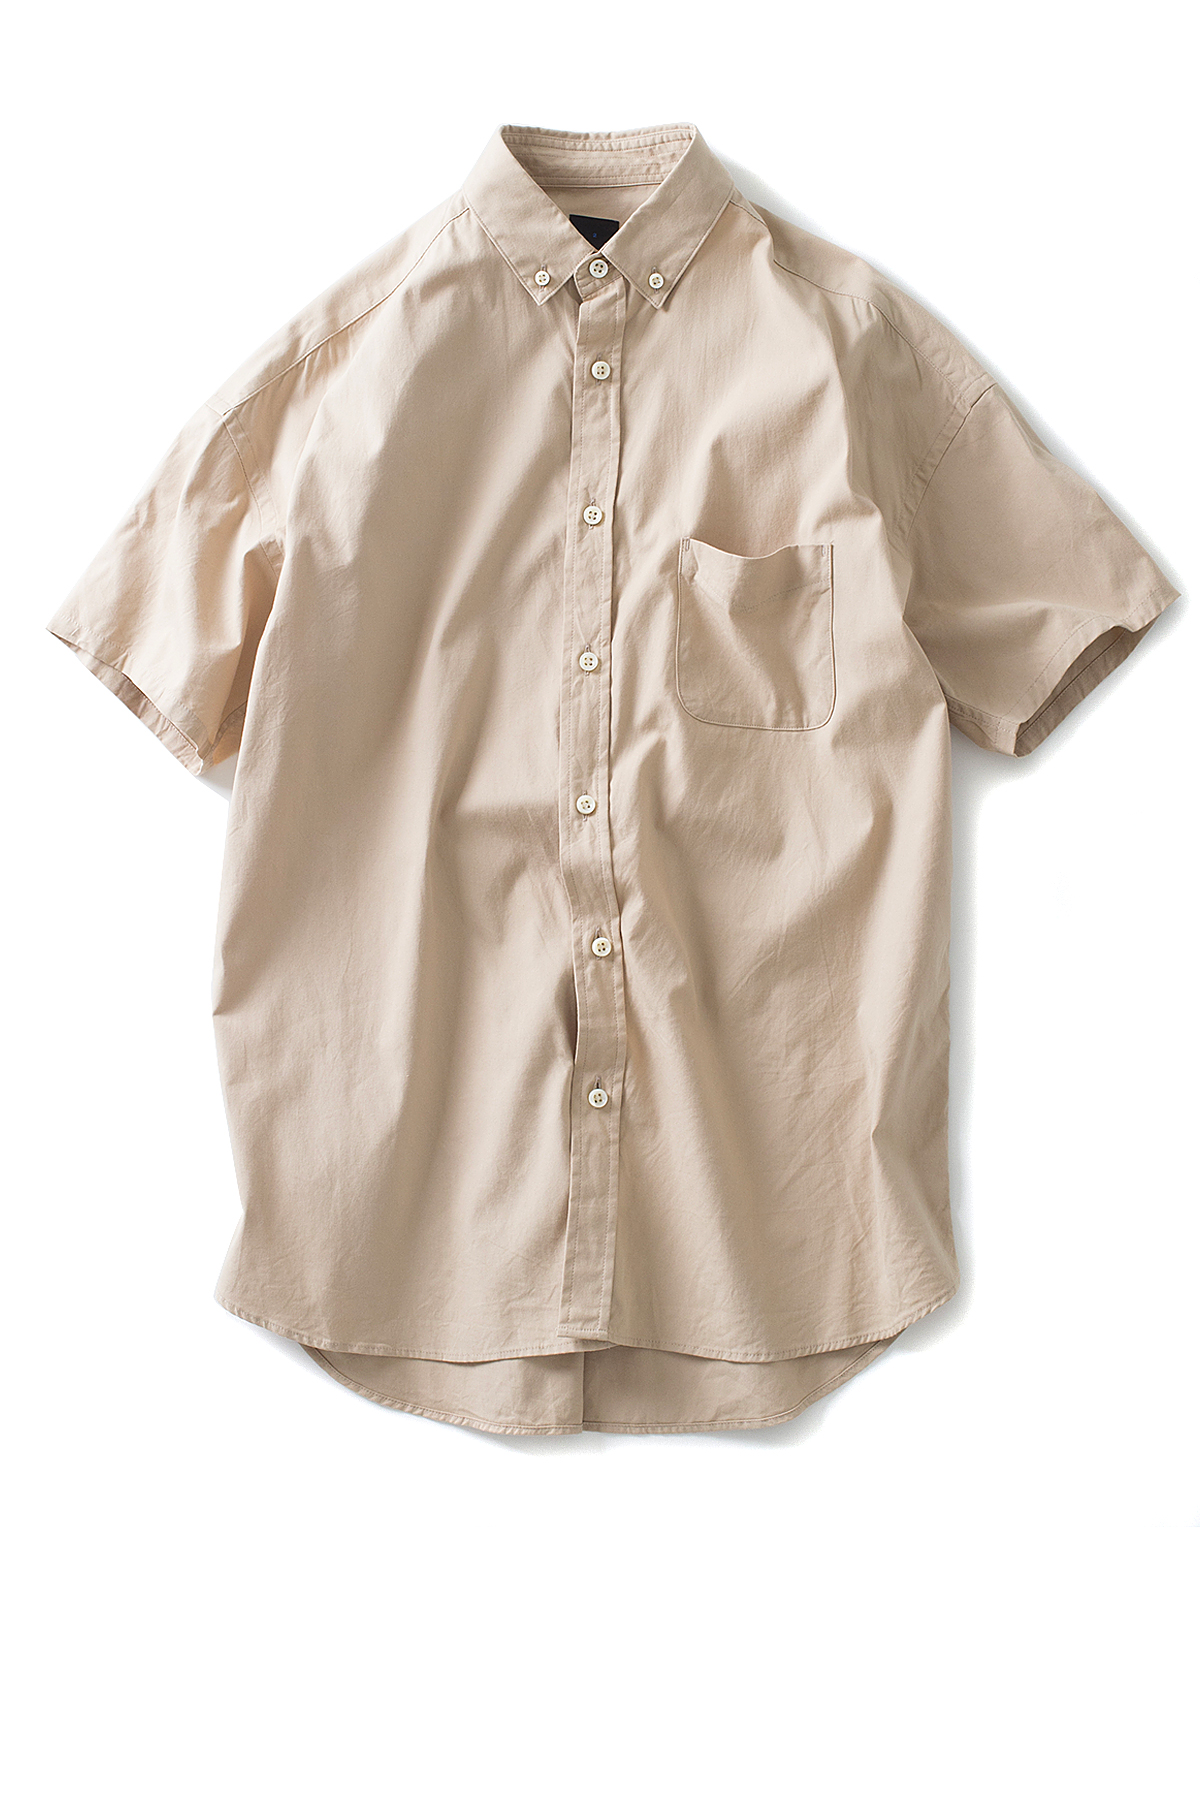 maillot : Soft OX Relax S/S BD Shirt (Beige)